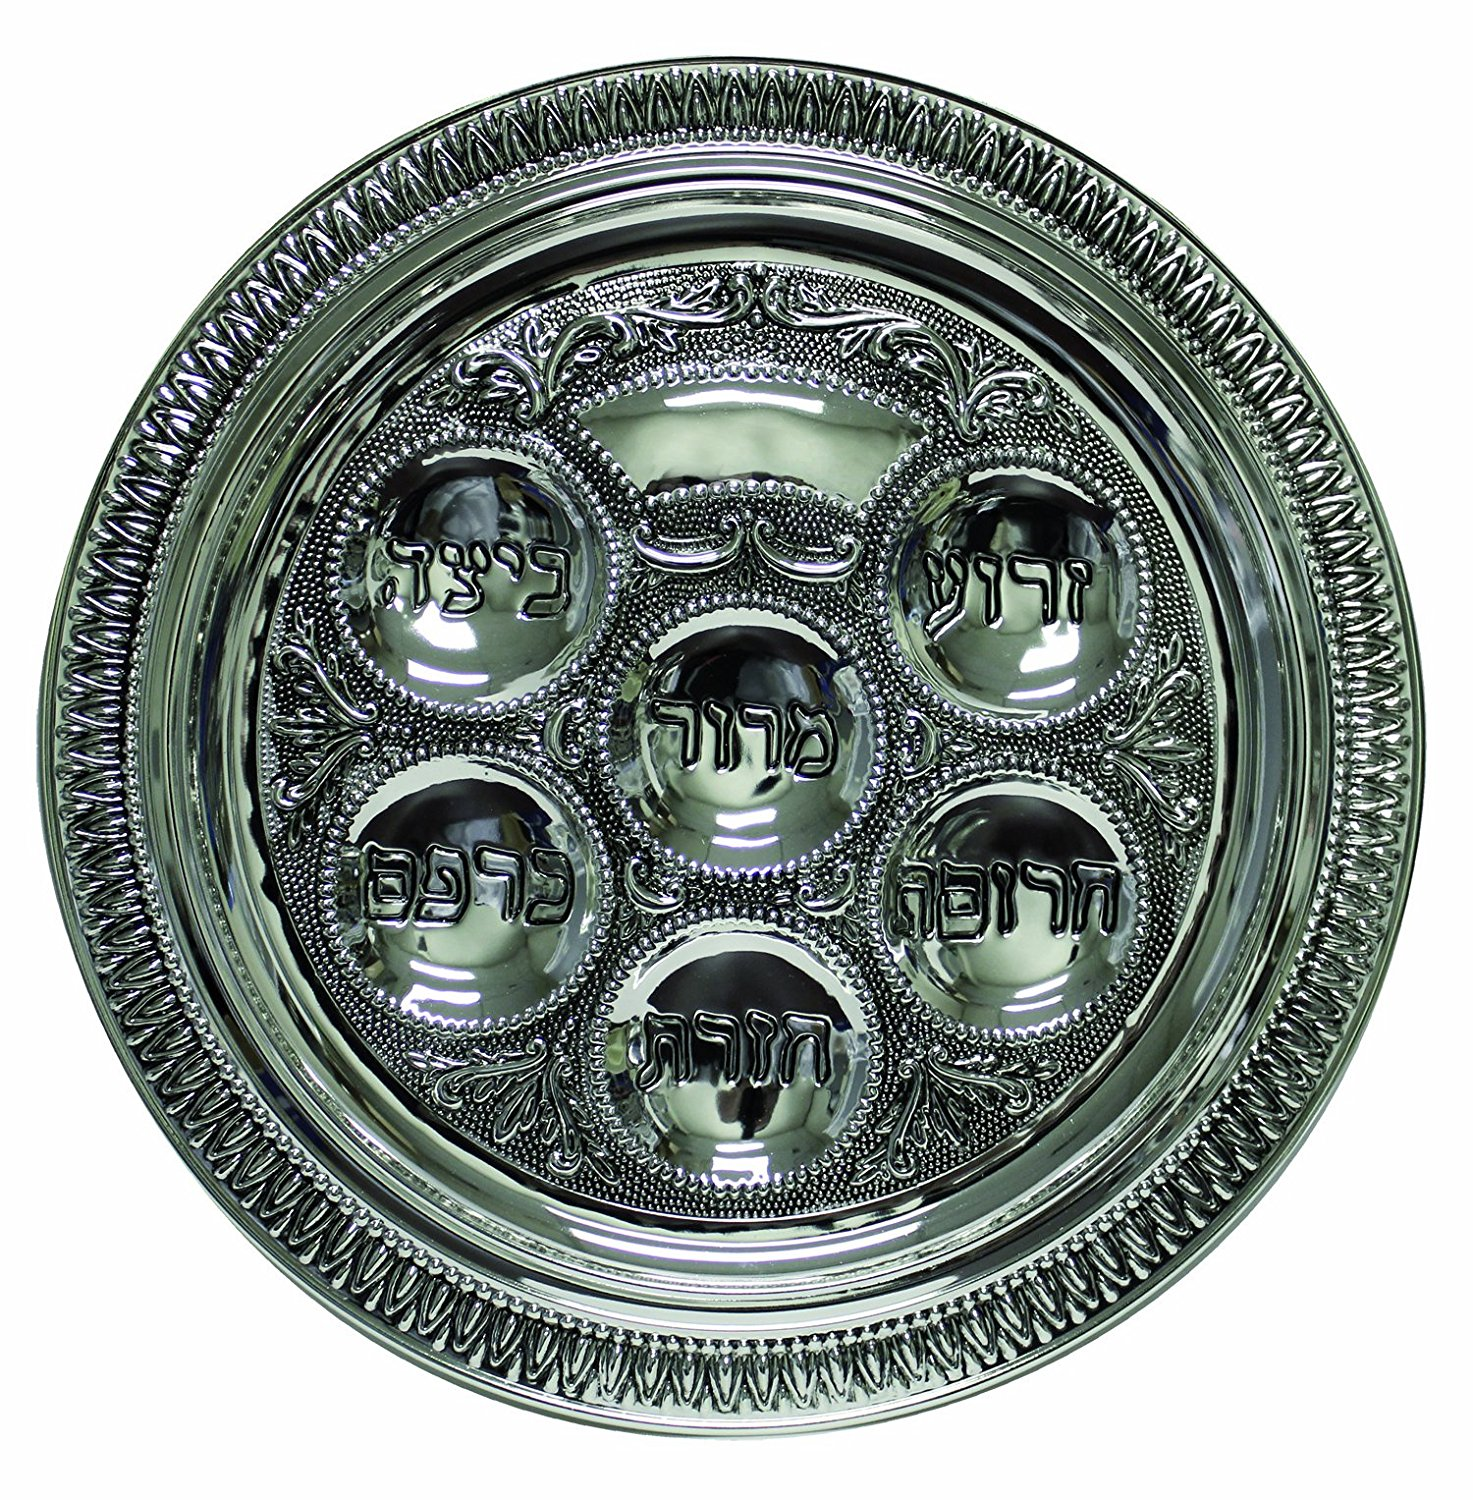 Passover Seder Plate, 15.5-Inch, Silver Plated, SPTF1739BW3